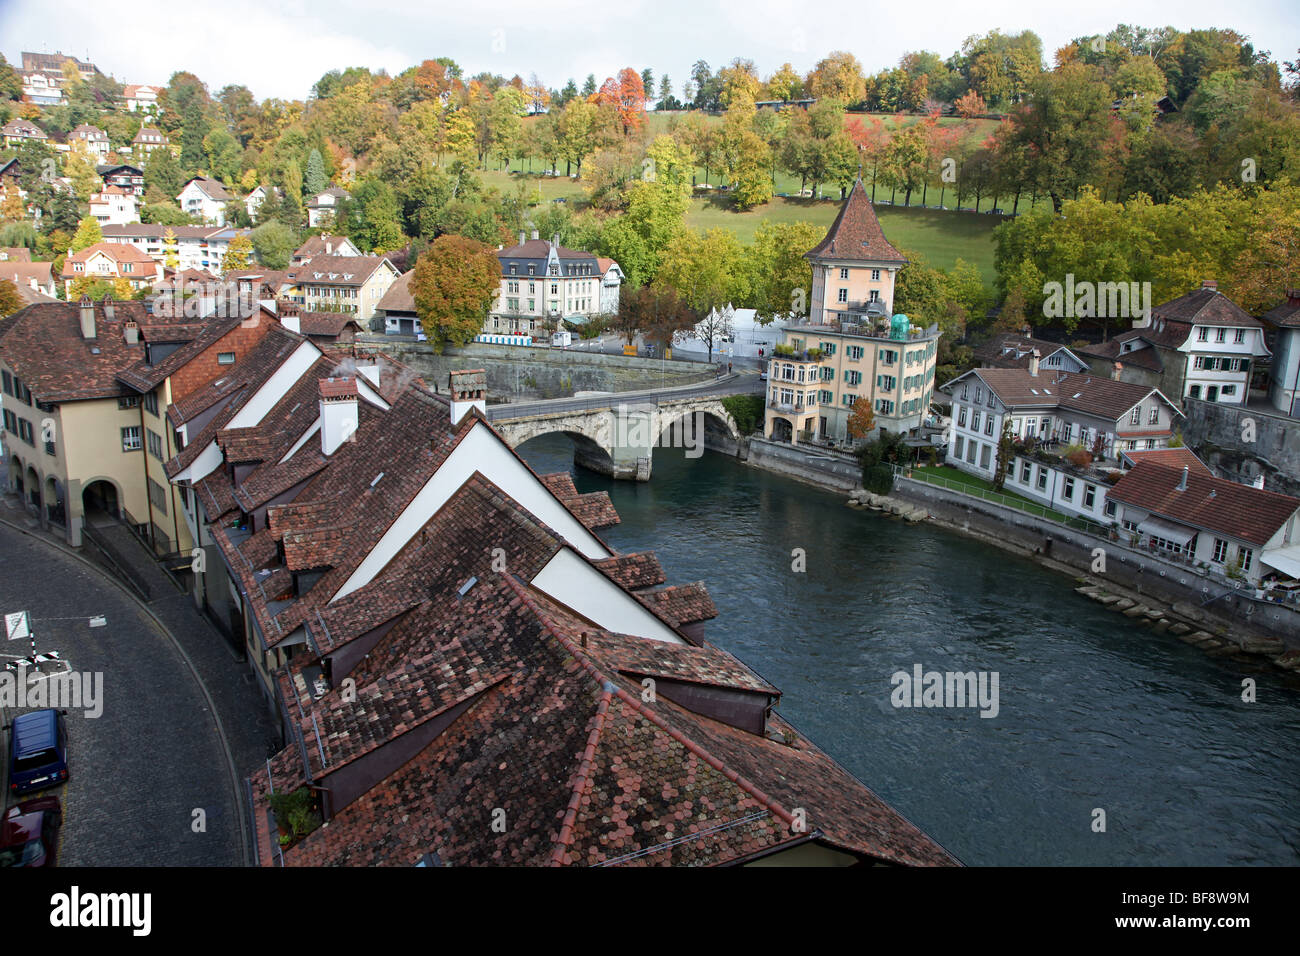 River Aare, medieval Bern - Stock Image